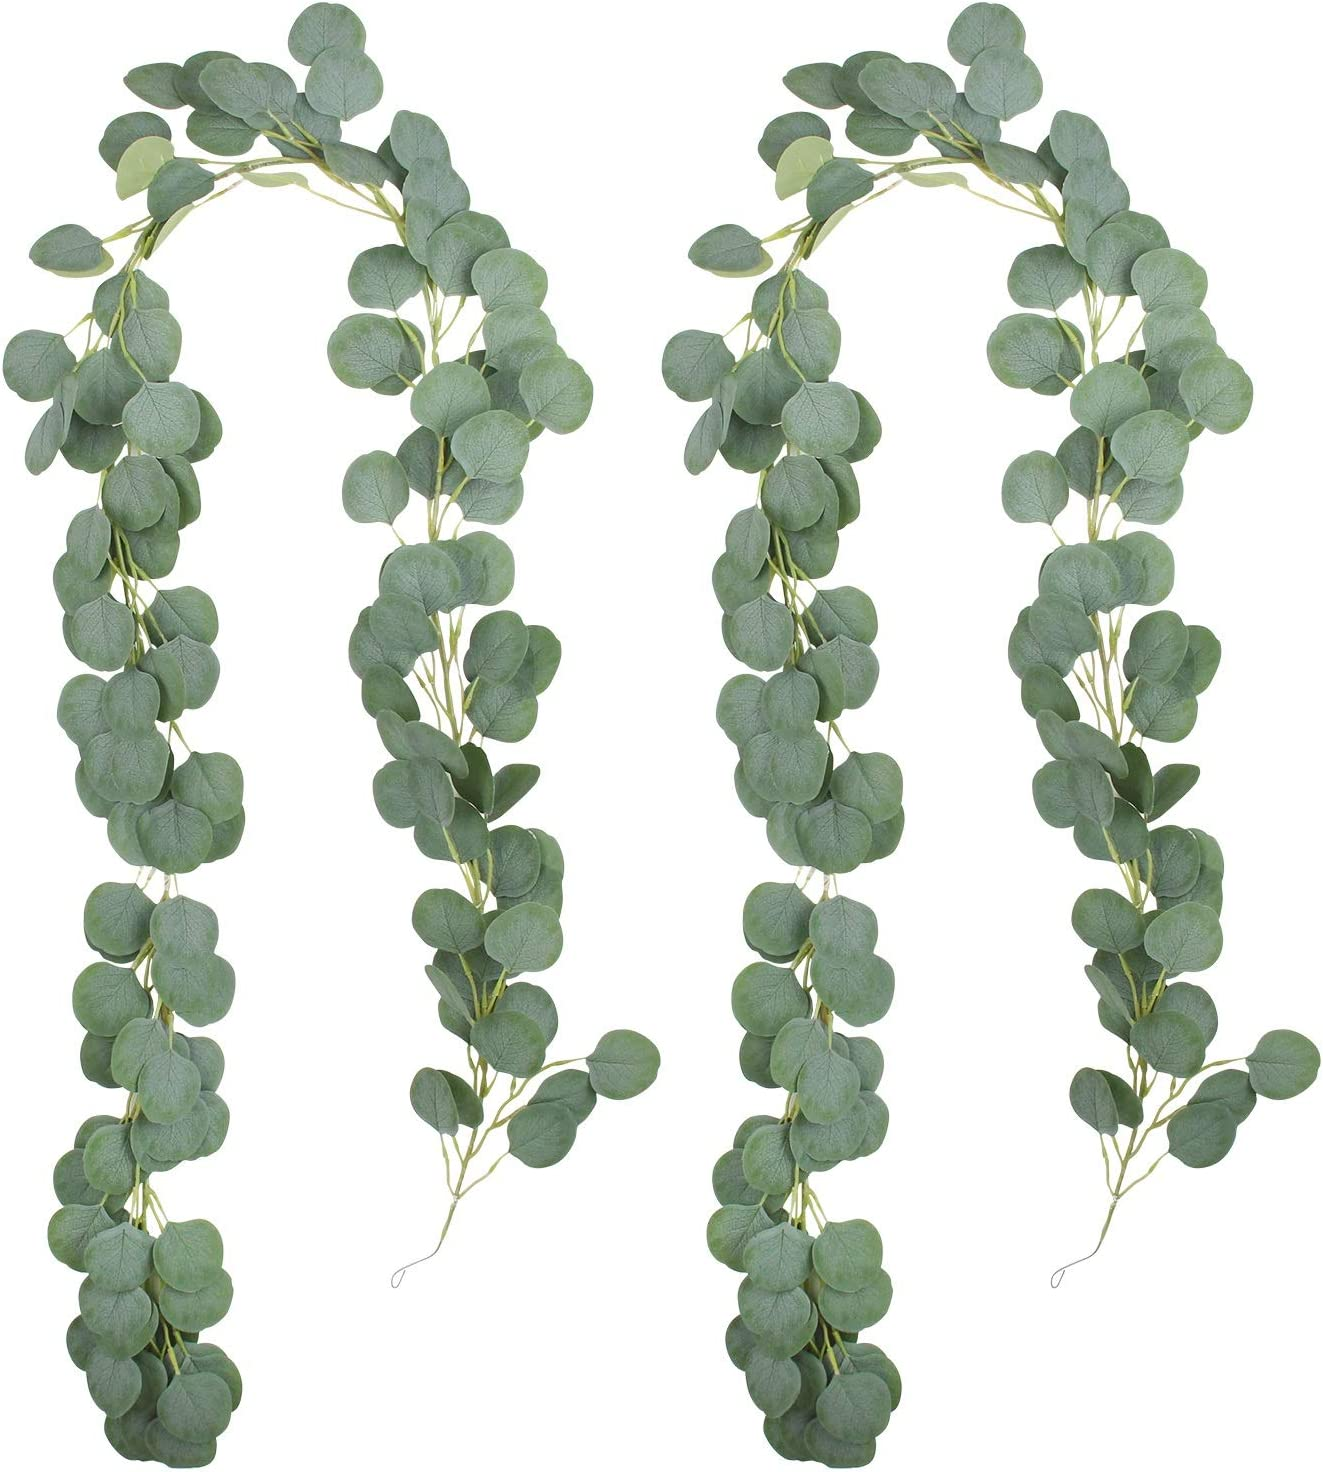 Artificial Vines Greenery Garlands, 2 Pack Artificial Faux Eucalyptus Garland Leaves Garland, 6.5ft Silk Spring Table Garland for Wedding Backdrop Arch Wall Decoration, Party Decor